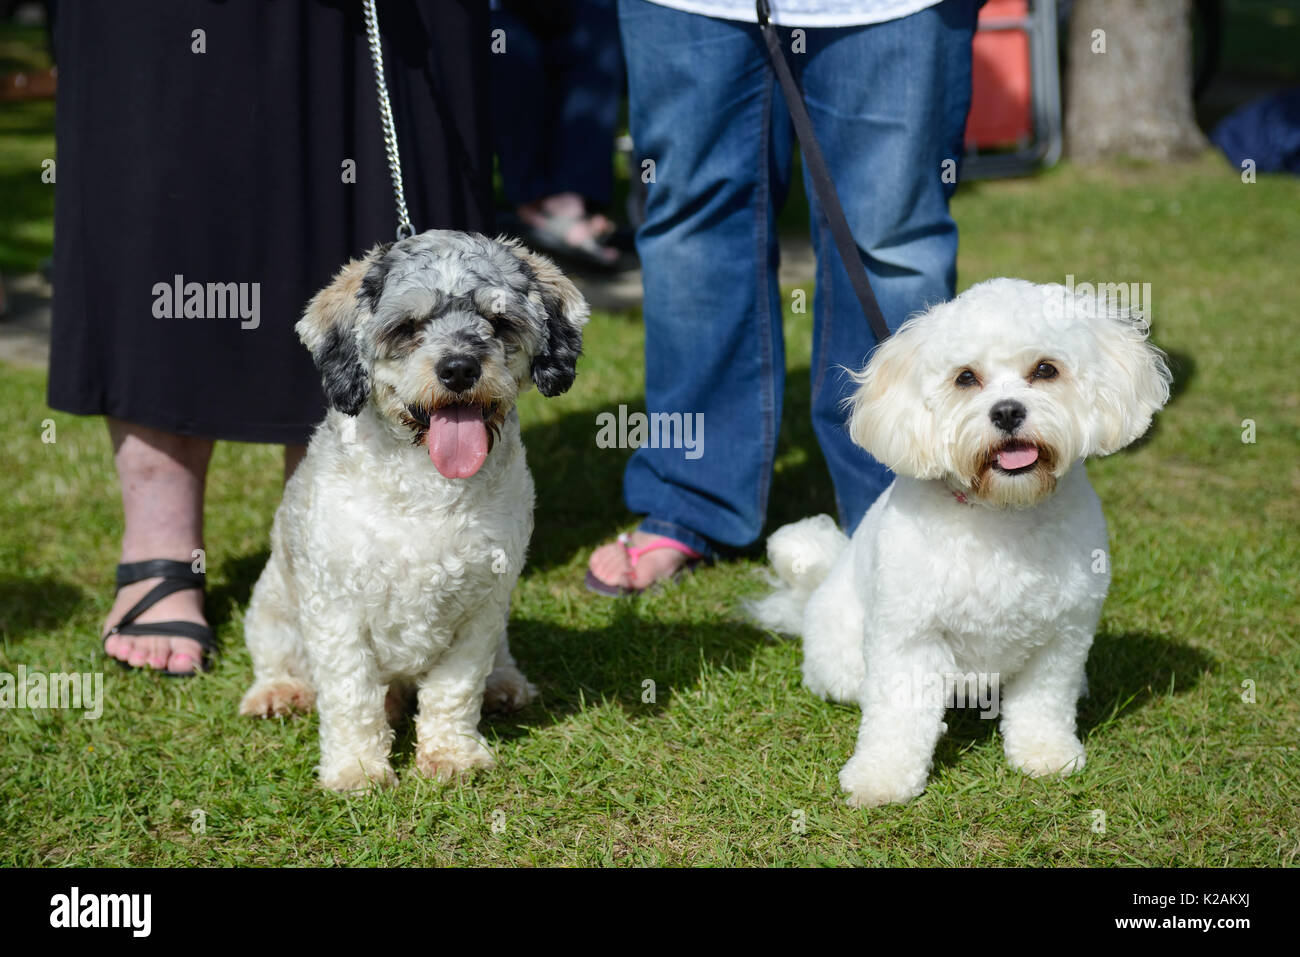 Two cavapoo dogs on leads at a village dog show. - Stock Image